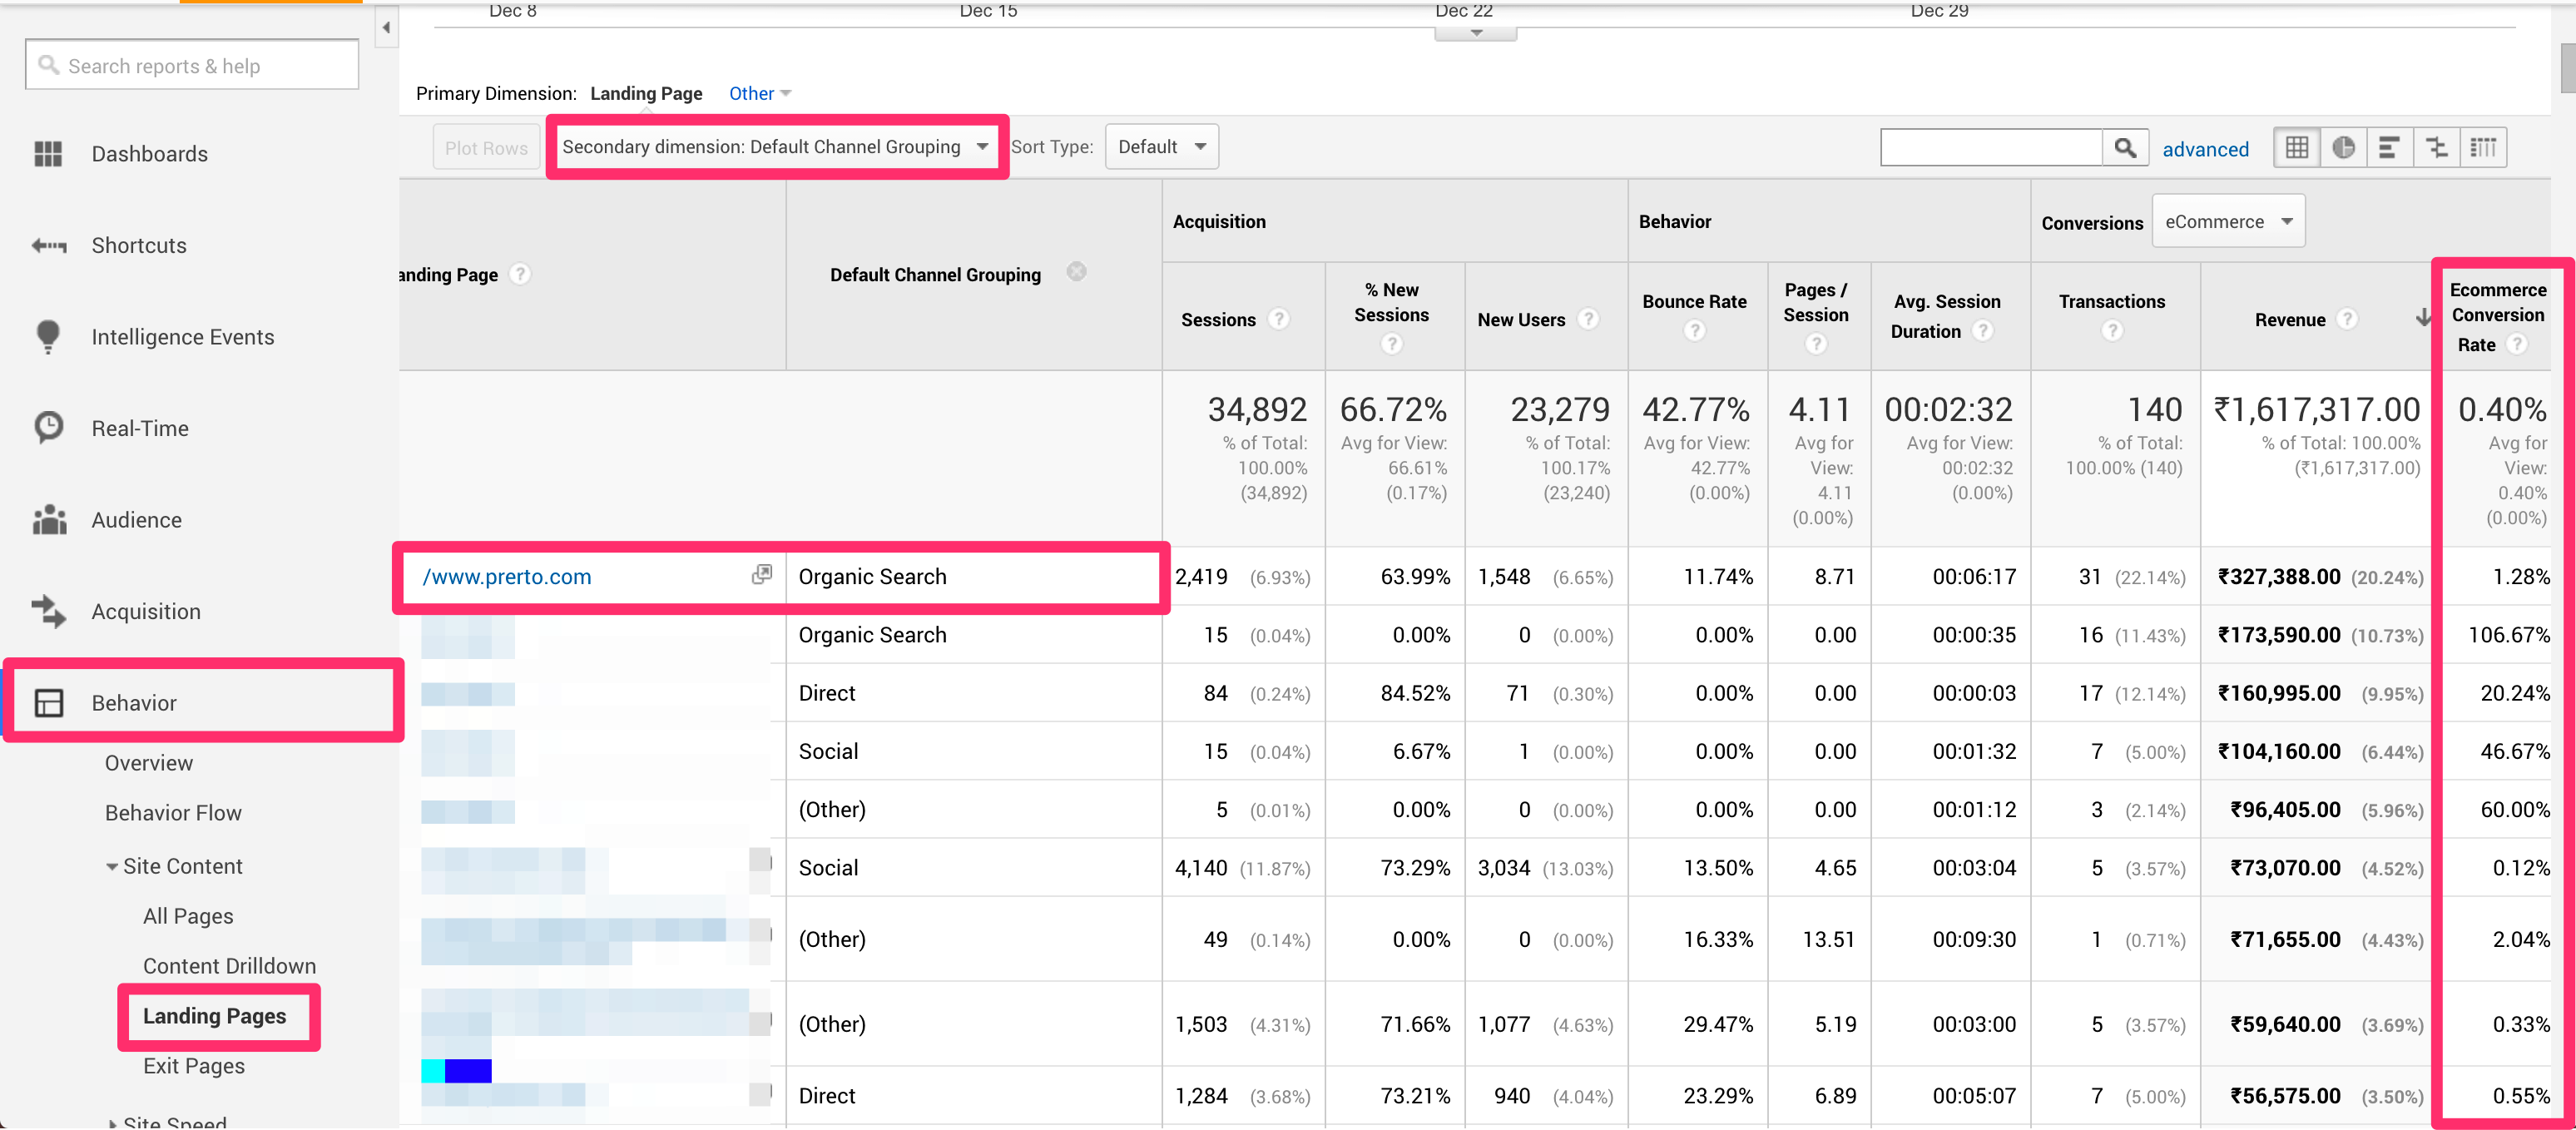 The Roi Of Seo How To Calculate The Value Of Organic Search Traffic